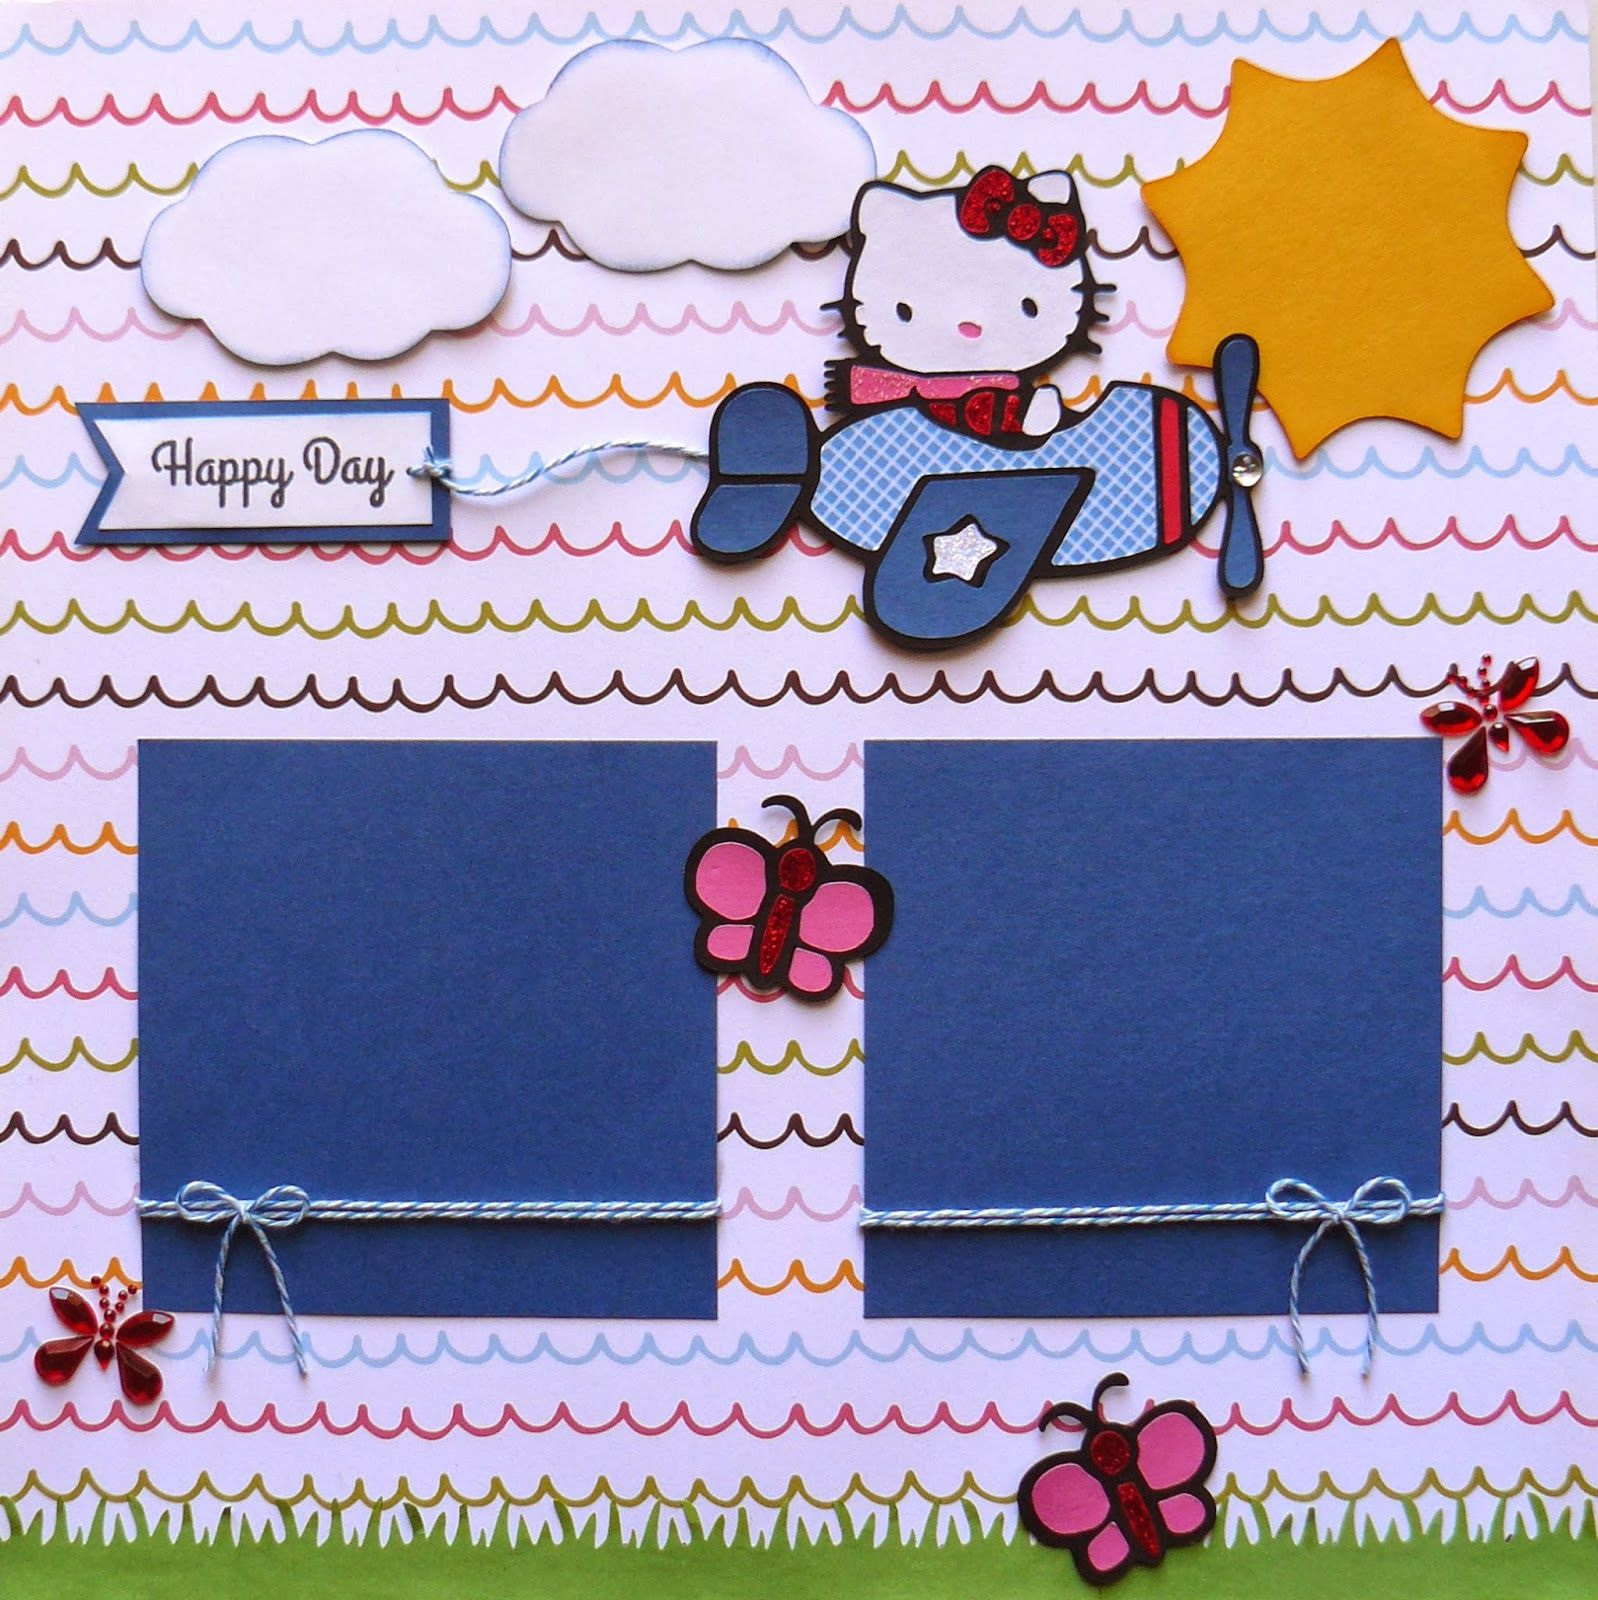 Scrapbook ideas hello kitty - Scrappin Dhilly Hello Kitty Greetings